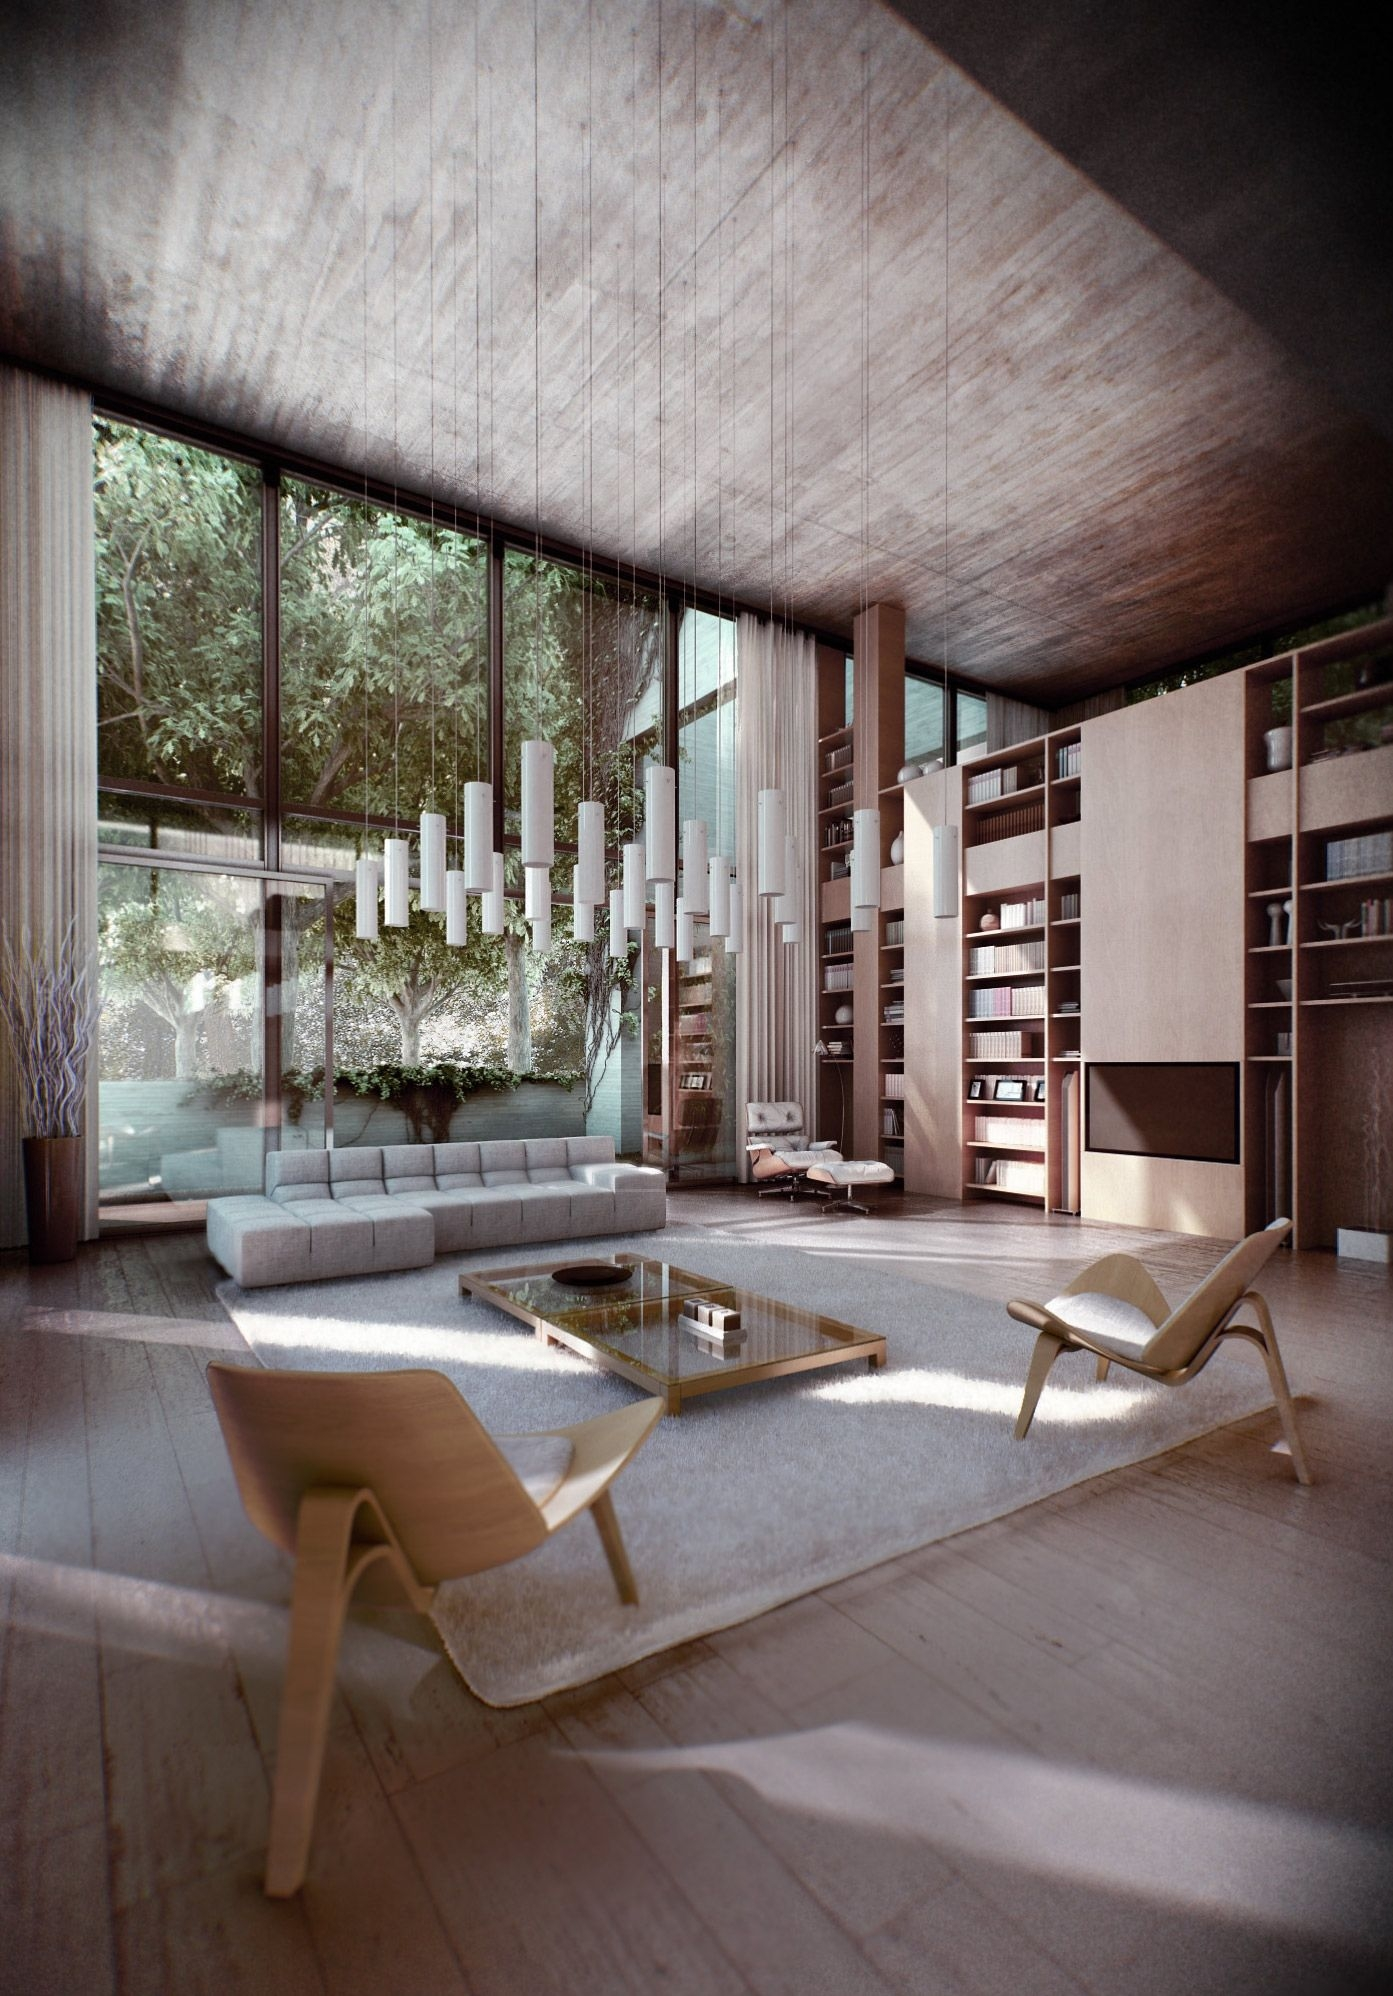 Living Room With Japanese Style Would Be Stunning Your Home  Roohome  Designs  Plans